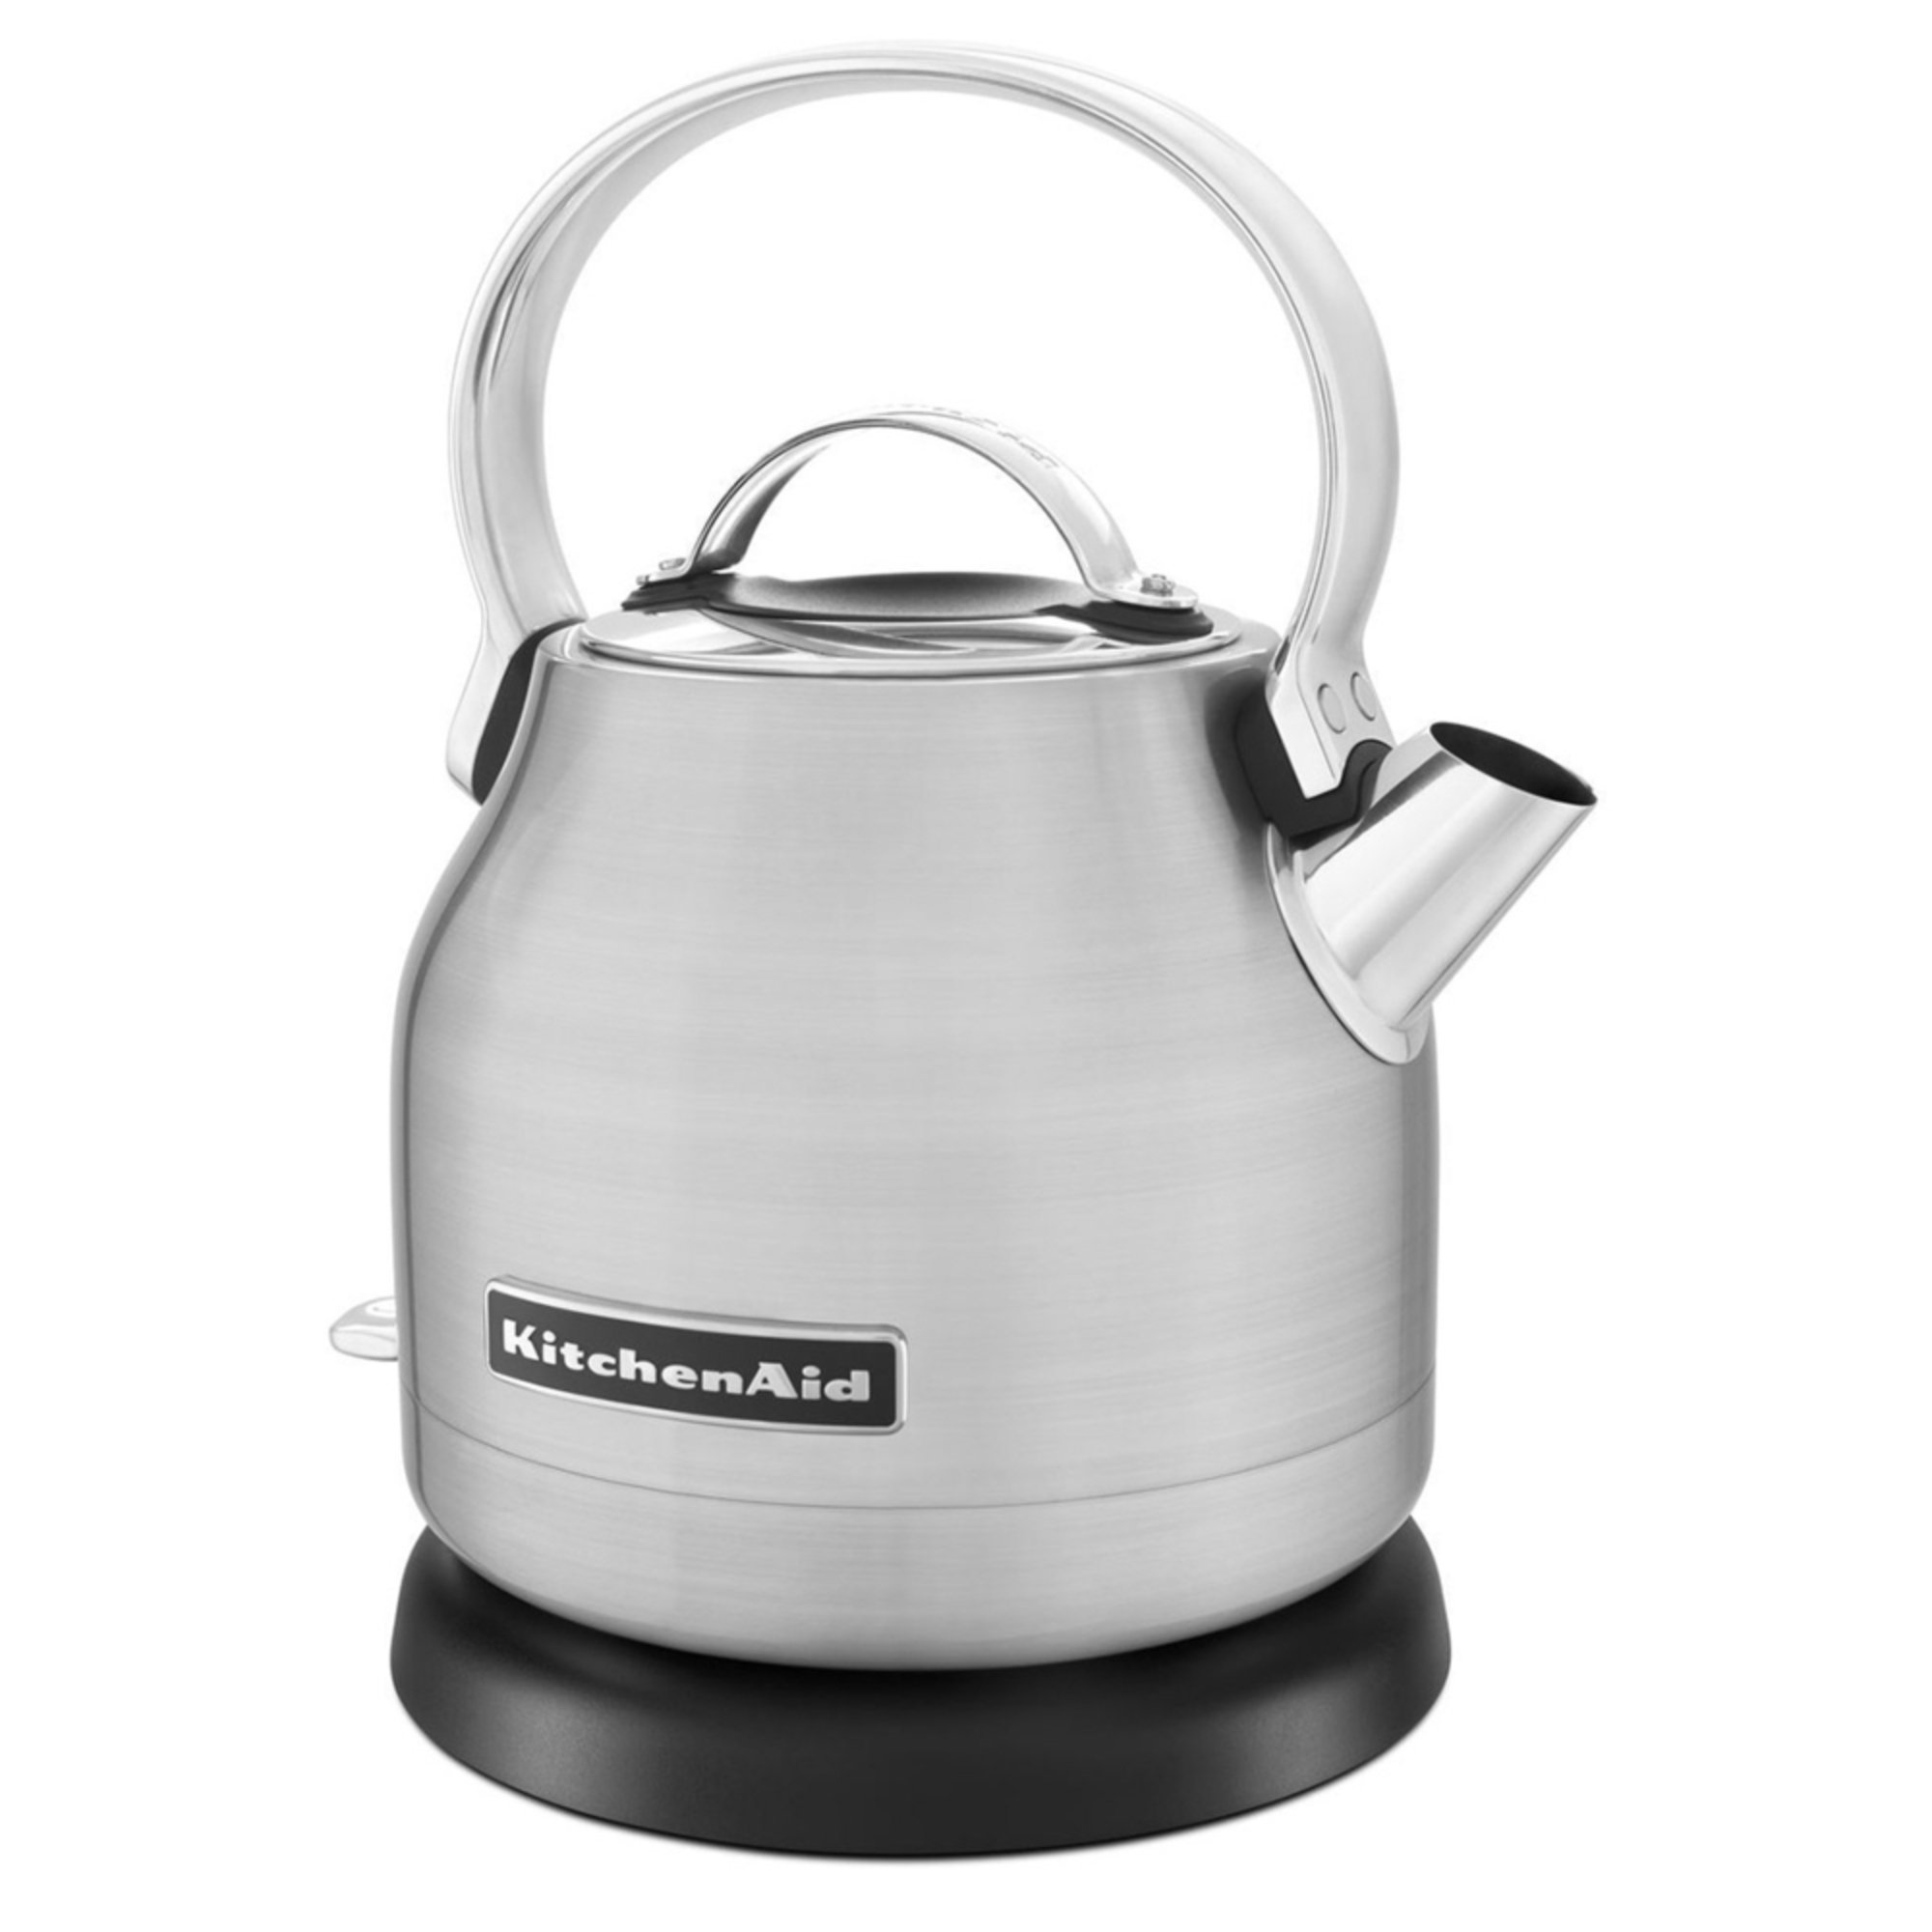 Kitchenaid 1.25-liter Small Space Electric Kettle - Brushed ...